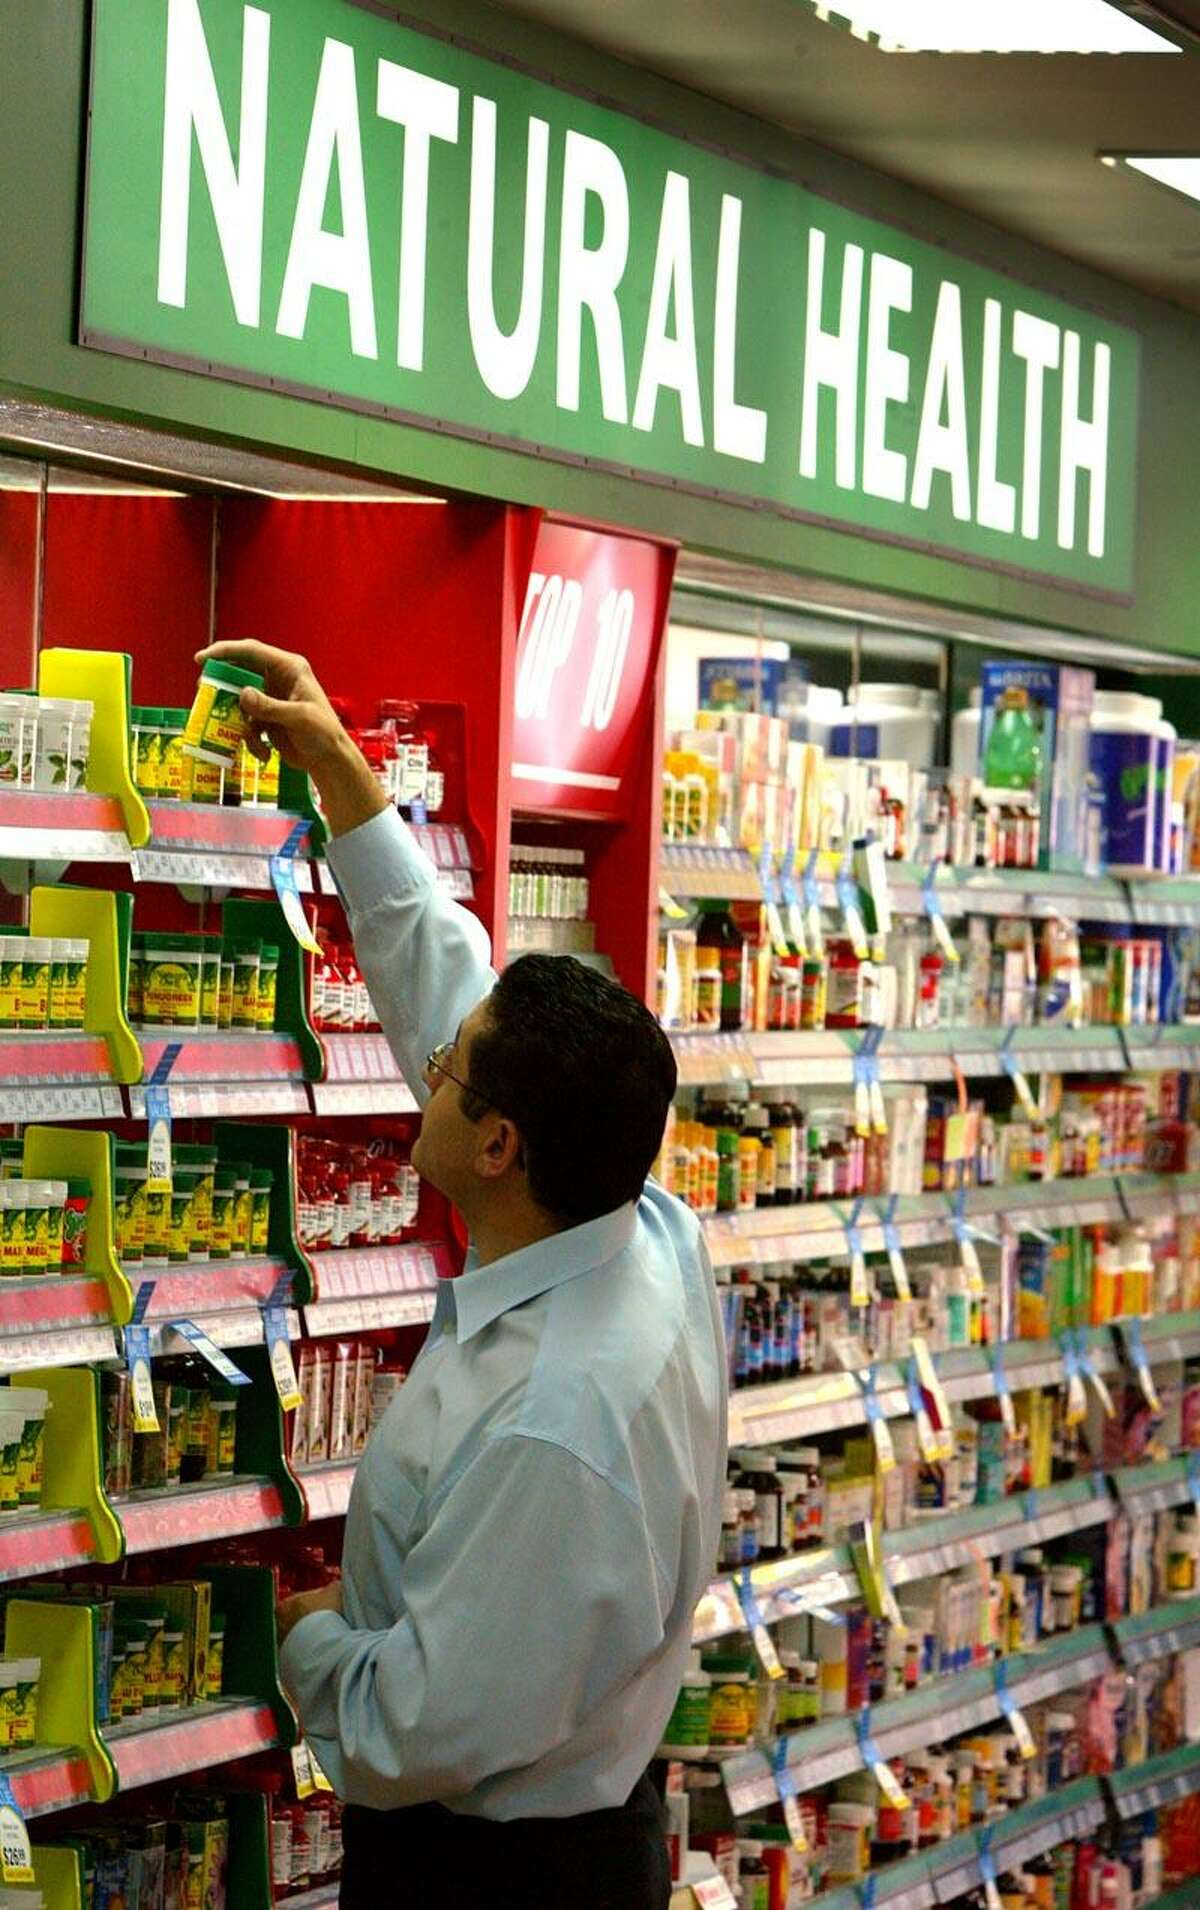 Store worker Sam Issa checks the brand names of rows of herbal, vitamin and mineral pill products at a suburban pharmacy in Sydney April 29, 2003. Australians were urged not to panic over the biggest medical recall in the nation's history which could spread to thousands of over-the-counter drugs and exports of non-prescription medicines in Asia and Europe. Pan Pharmaceuticals, Australia's largest maker of herbal, vitamin and mineral pills (better known as 'complimentary medicines'), is accused of potentially harmful safety and quality breaches in making its own products and goods for other brands. The government's Therapeutic Goods Administration (TGA) has warned Australians to delay taking vitamin and herbal supplements, and the Pharmecy Guild of Australia said confusion reigned as to which products they had to advise their members to remove from their shelves until they new which ones contained Pan ingredients. REUTERS/David Gray